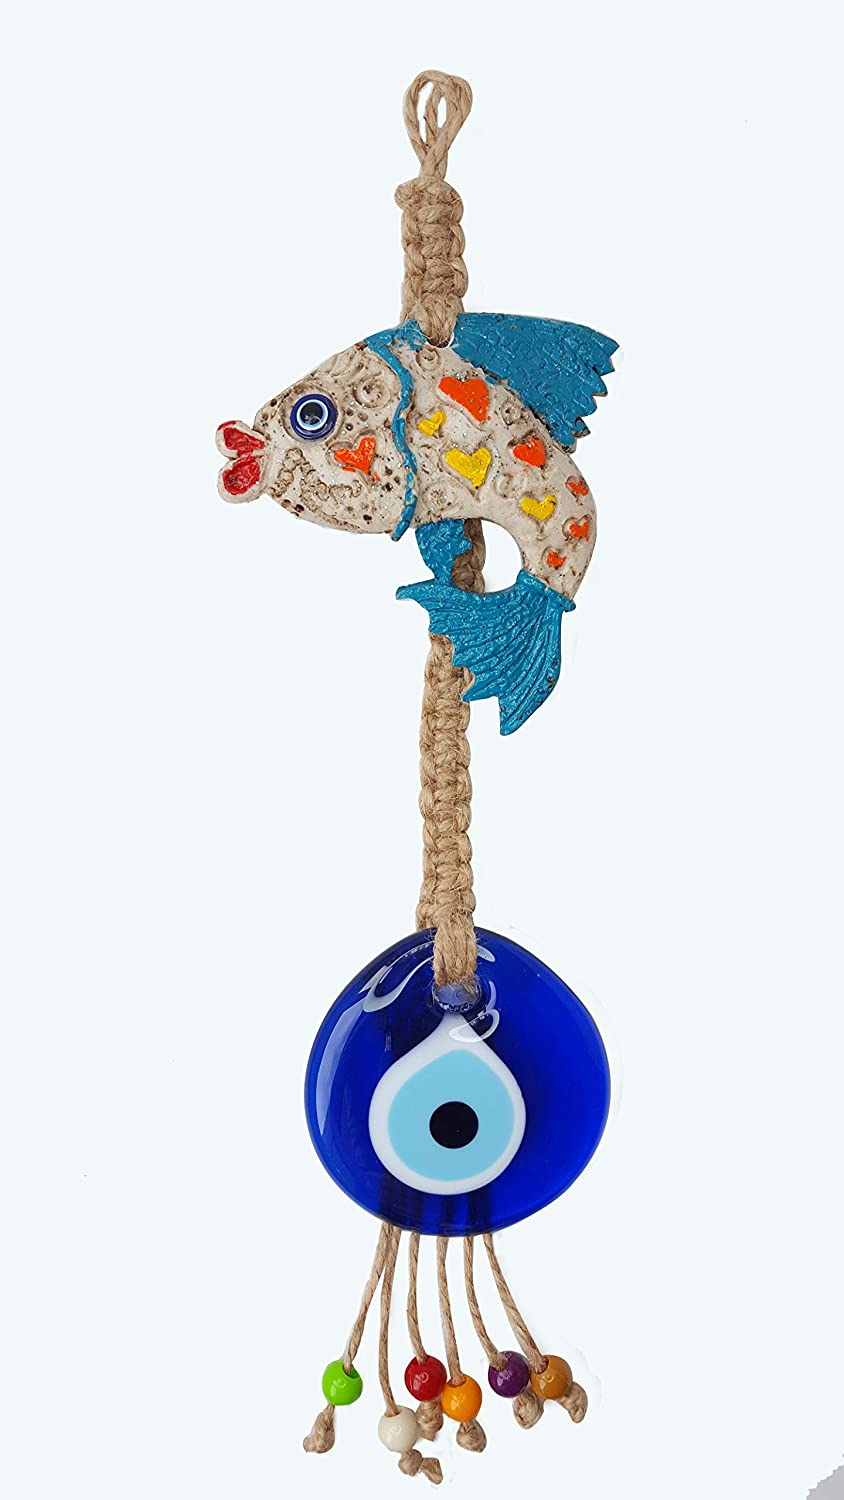 supers Ceramic Fish with Evil Eye Beads Wall Hanging Decor - Handmade Blue Glass - Blessing Charm Talisman Protection - Turkish Nazar - Decorative Ornament Great Gift - Luck Health Fortune Wealthiness